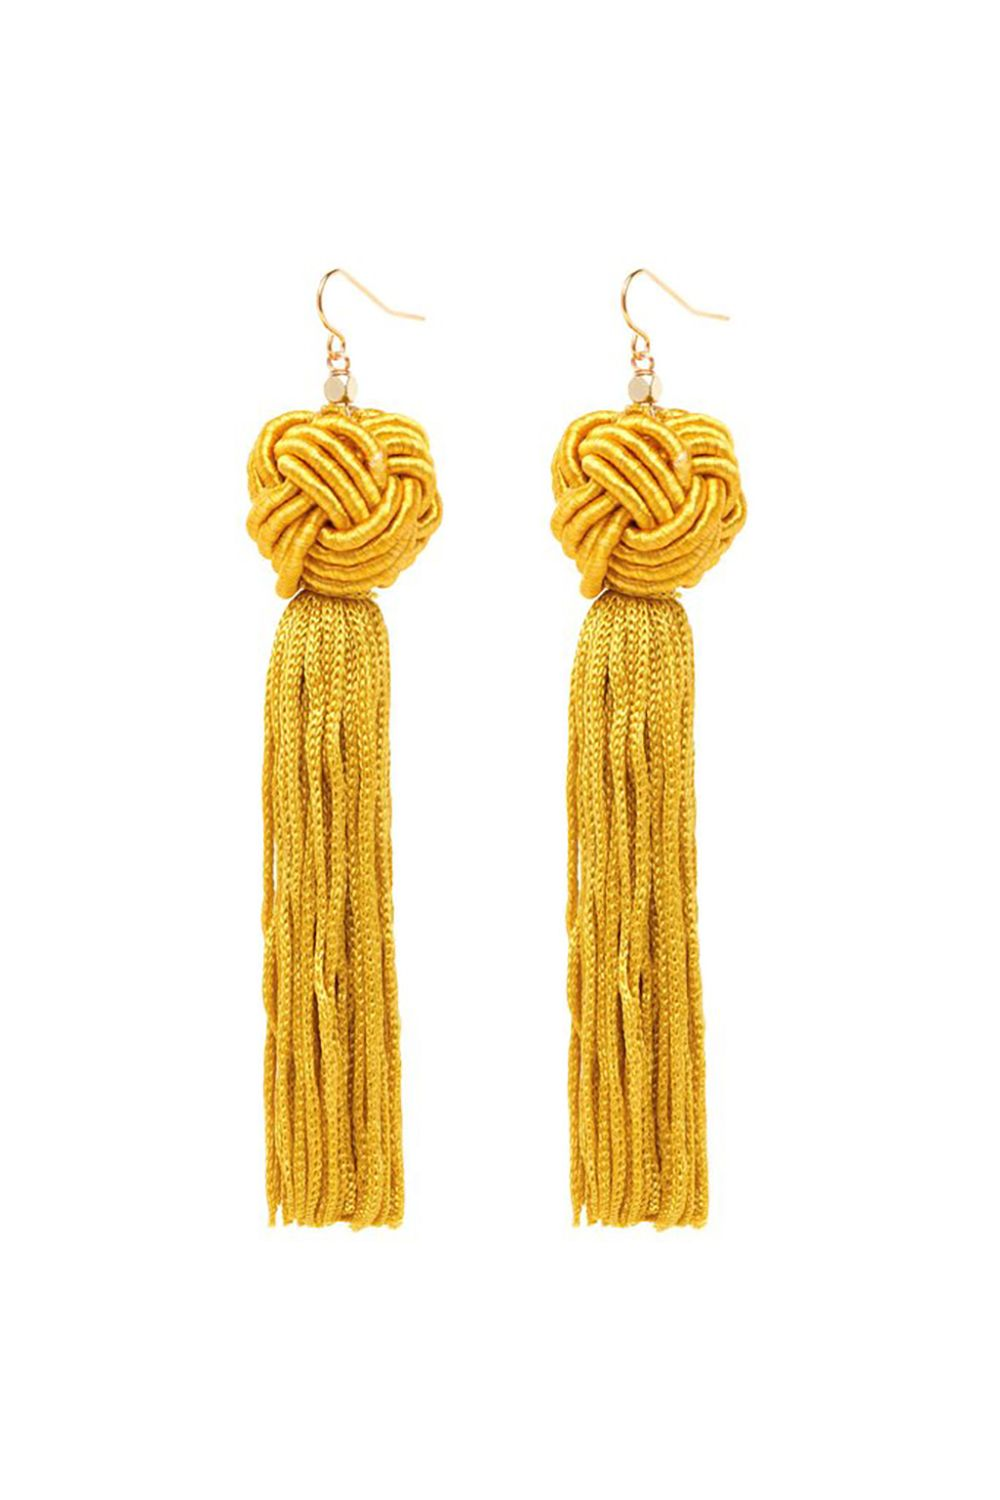 "<p>Get ready to shake what your mama gave ya! And these earrings of course. </p><p><strong data-redactor-tag=""strong"" data-verified=""redactor"">Astrid Gold Knotted Tassel Earrings, $45; <a href=""https://vanessamooney.com/products/the-astrid-gold-knotted-tassel-earrings?variant=30609760652"" data-tracking-id=""recirc-text-link"">vanessamooney.com</a>.</strong></p>"